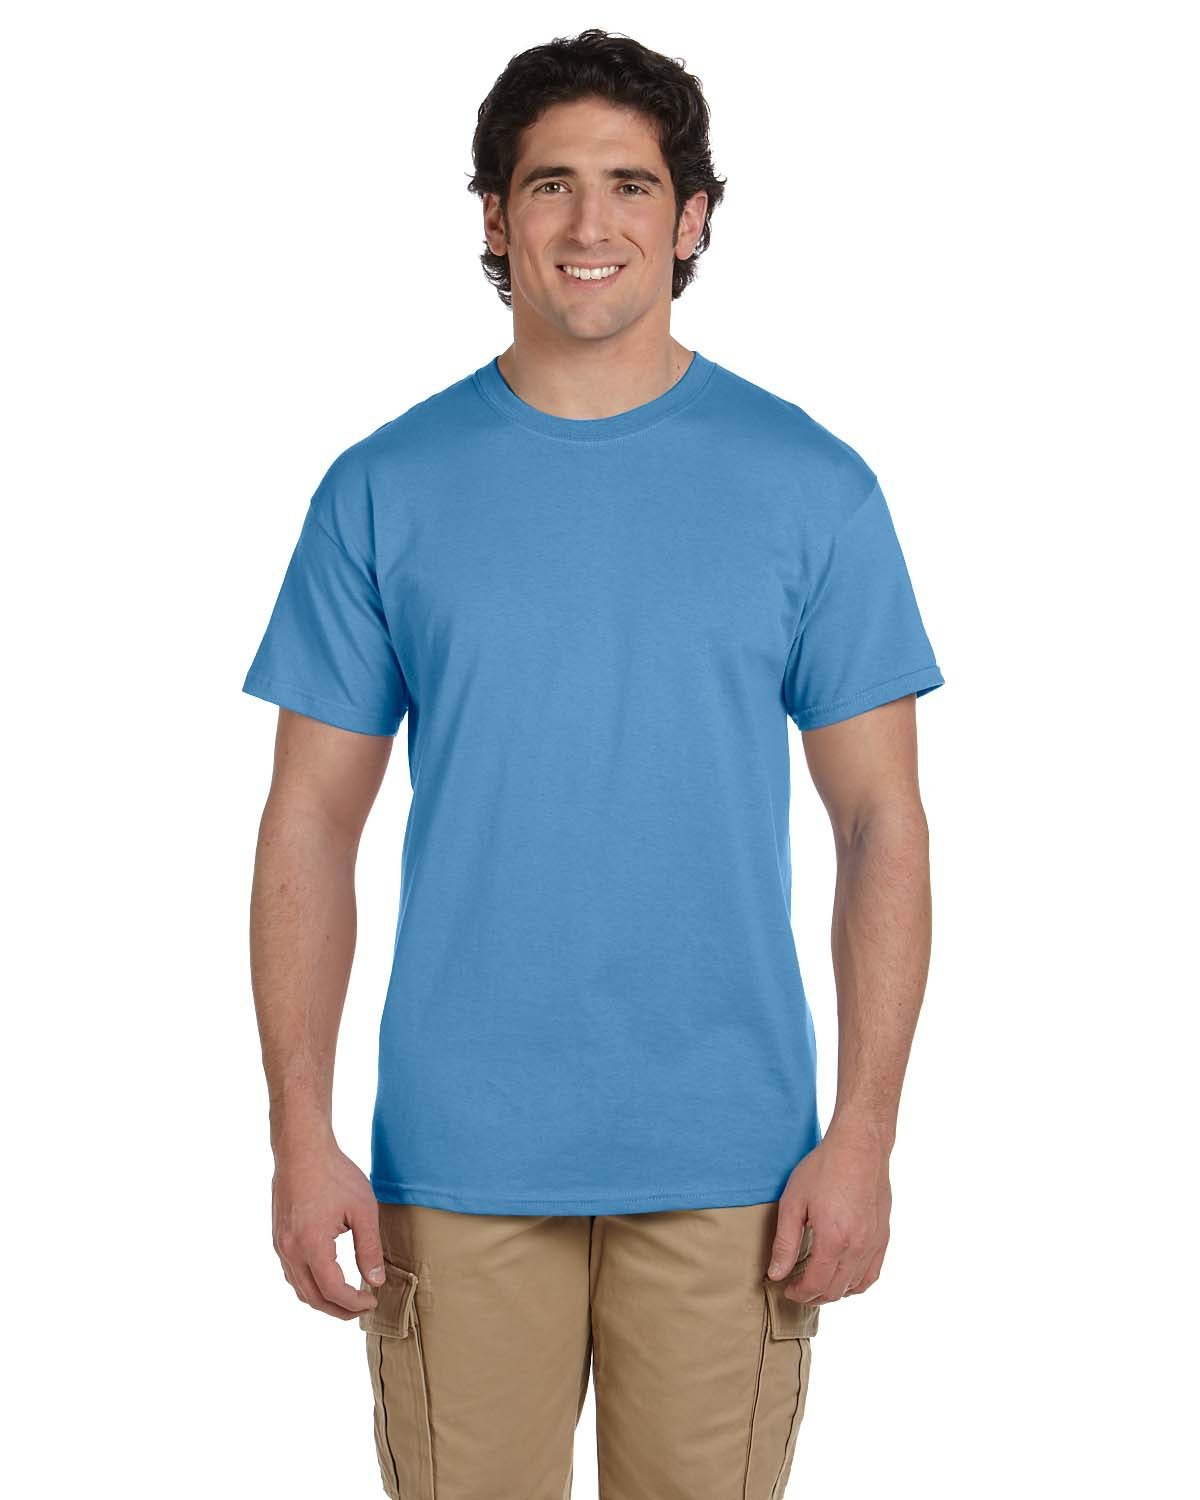 Fruit of the Loom Adult HD Cotton™ T-Shirt COLUMBIA BLUE